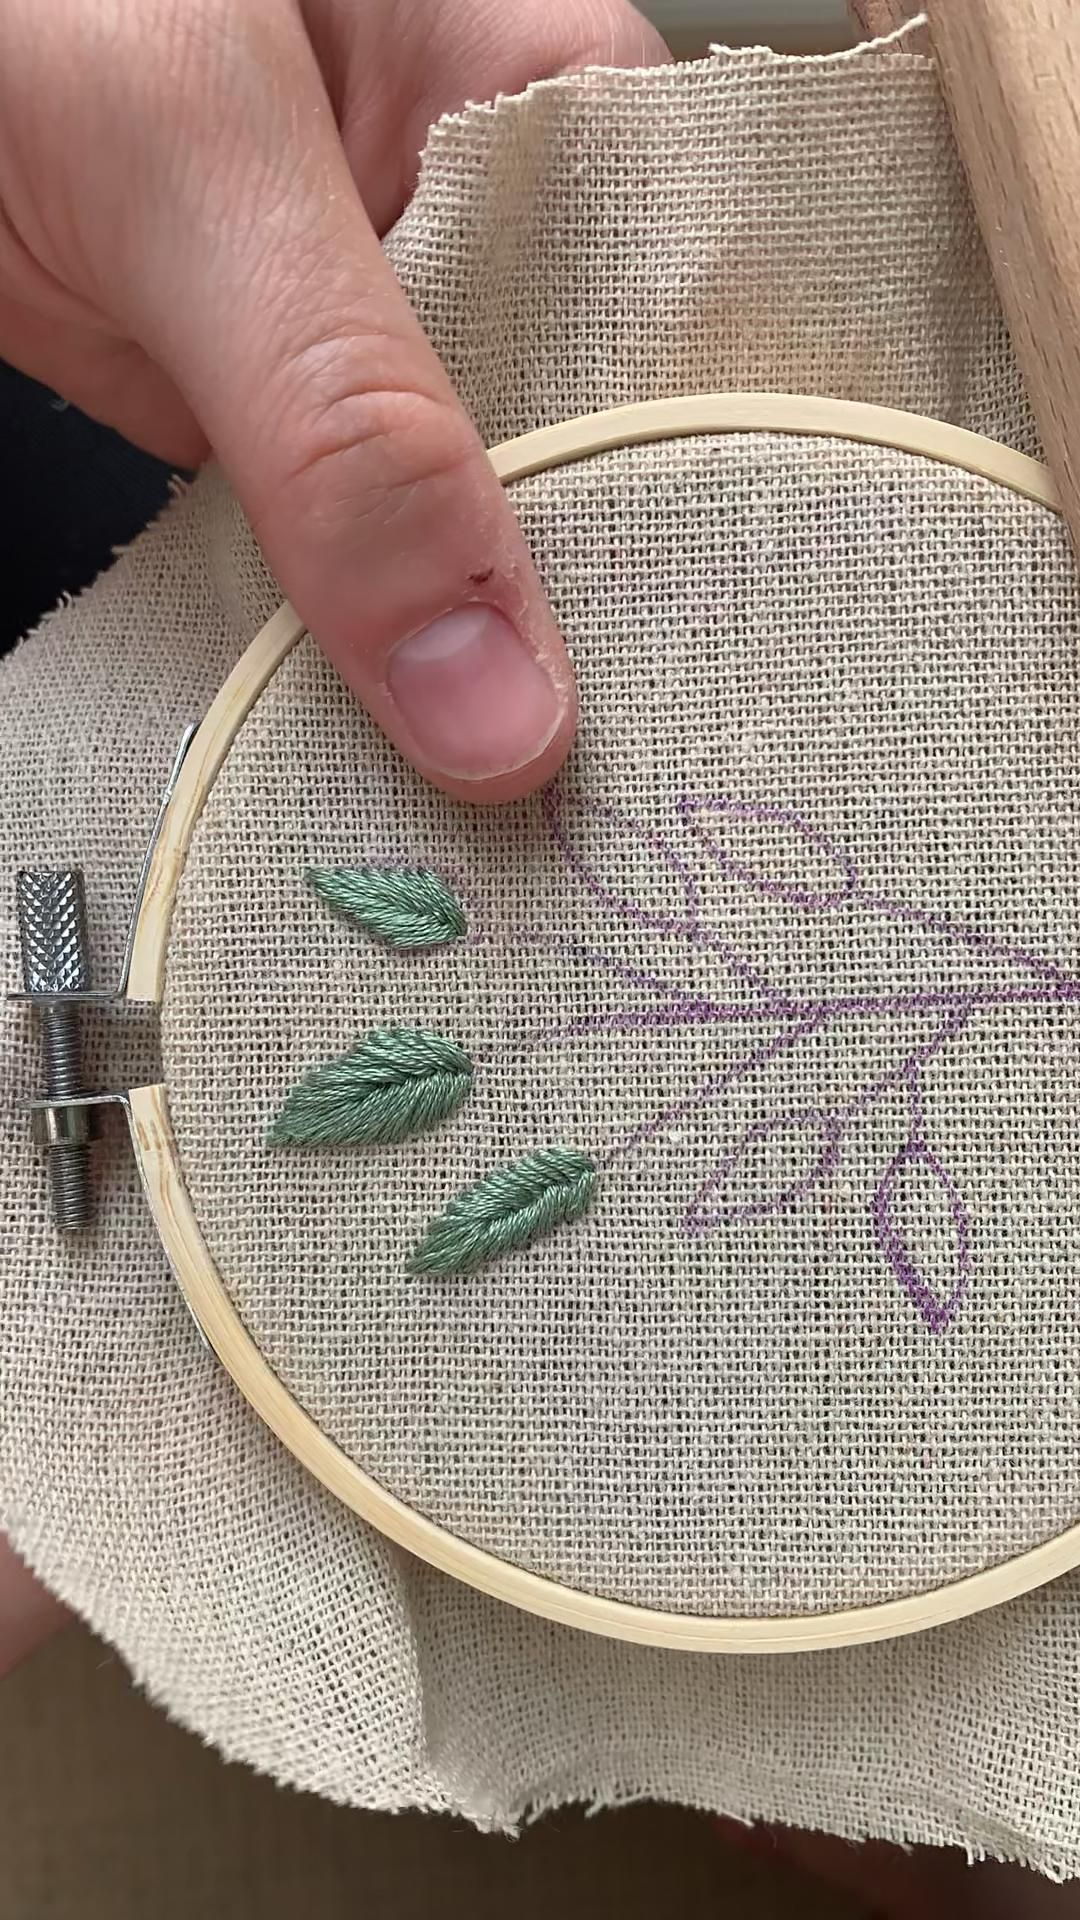 Little Leaves  – Sewing & Embroidery